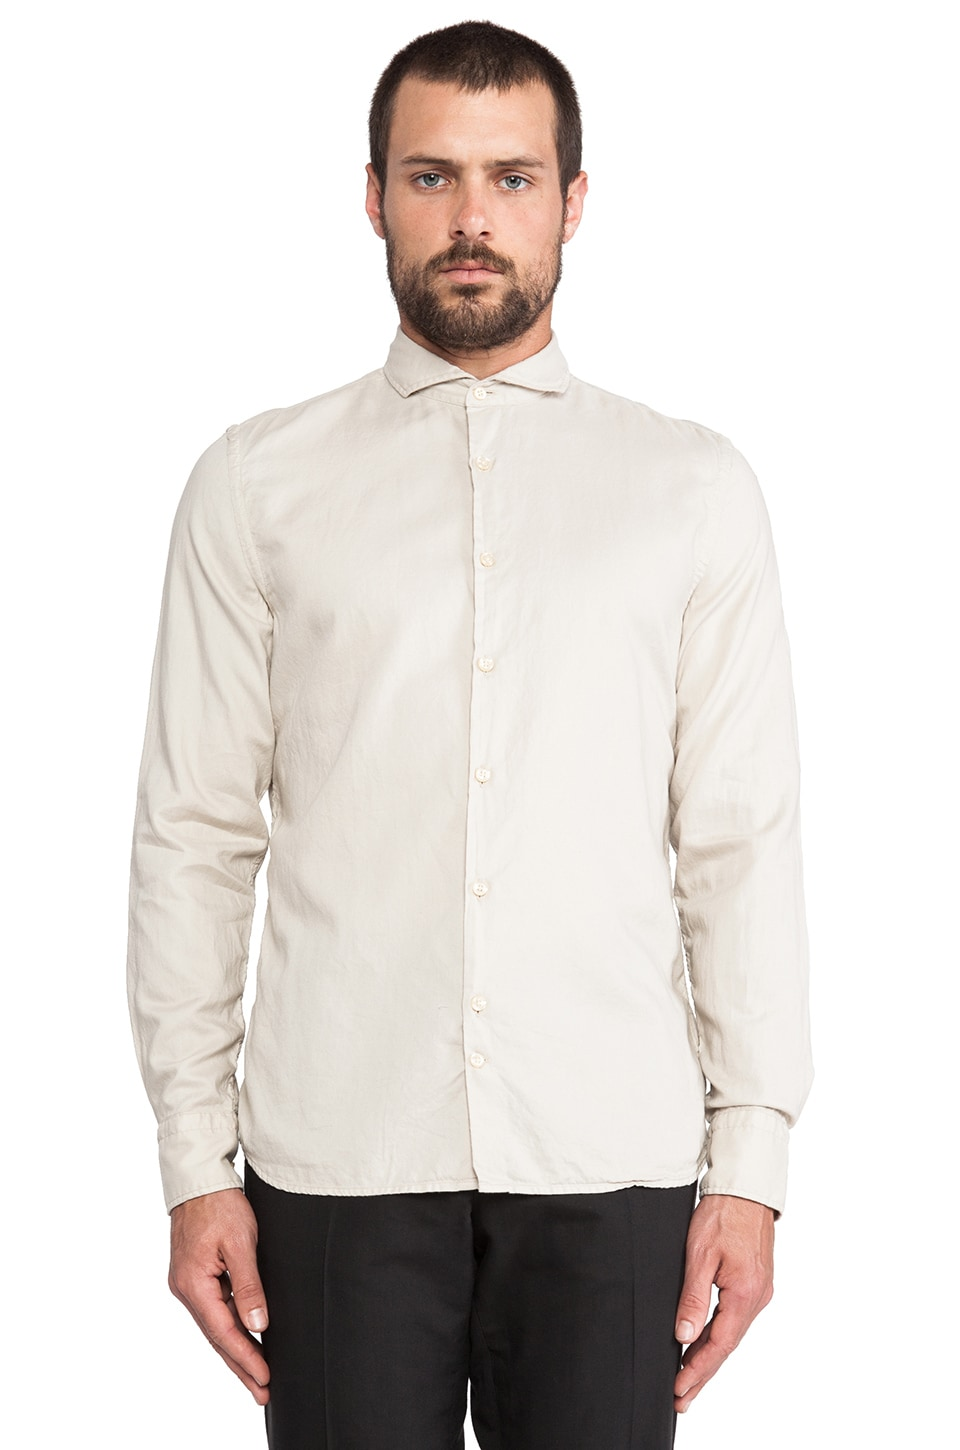 J. Lindeberg Dani 43 S-Cut Shirt in Linen